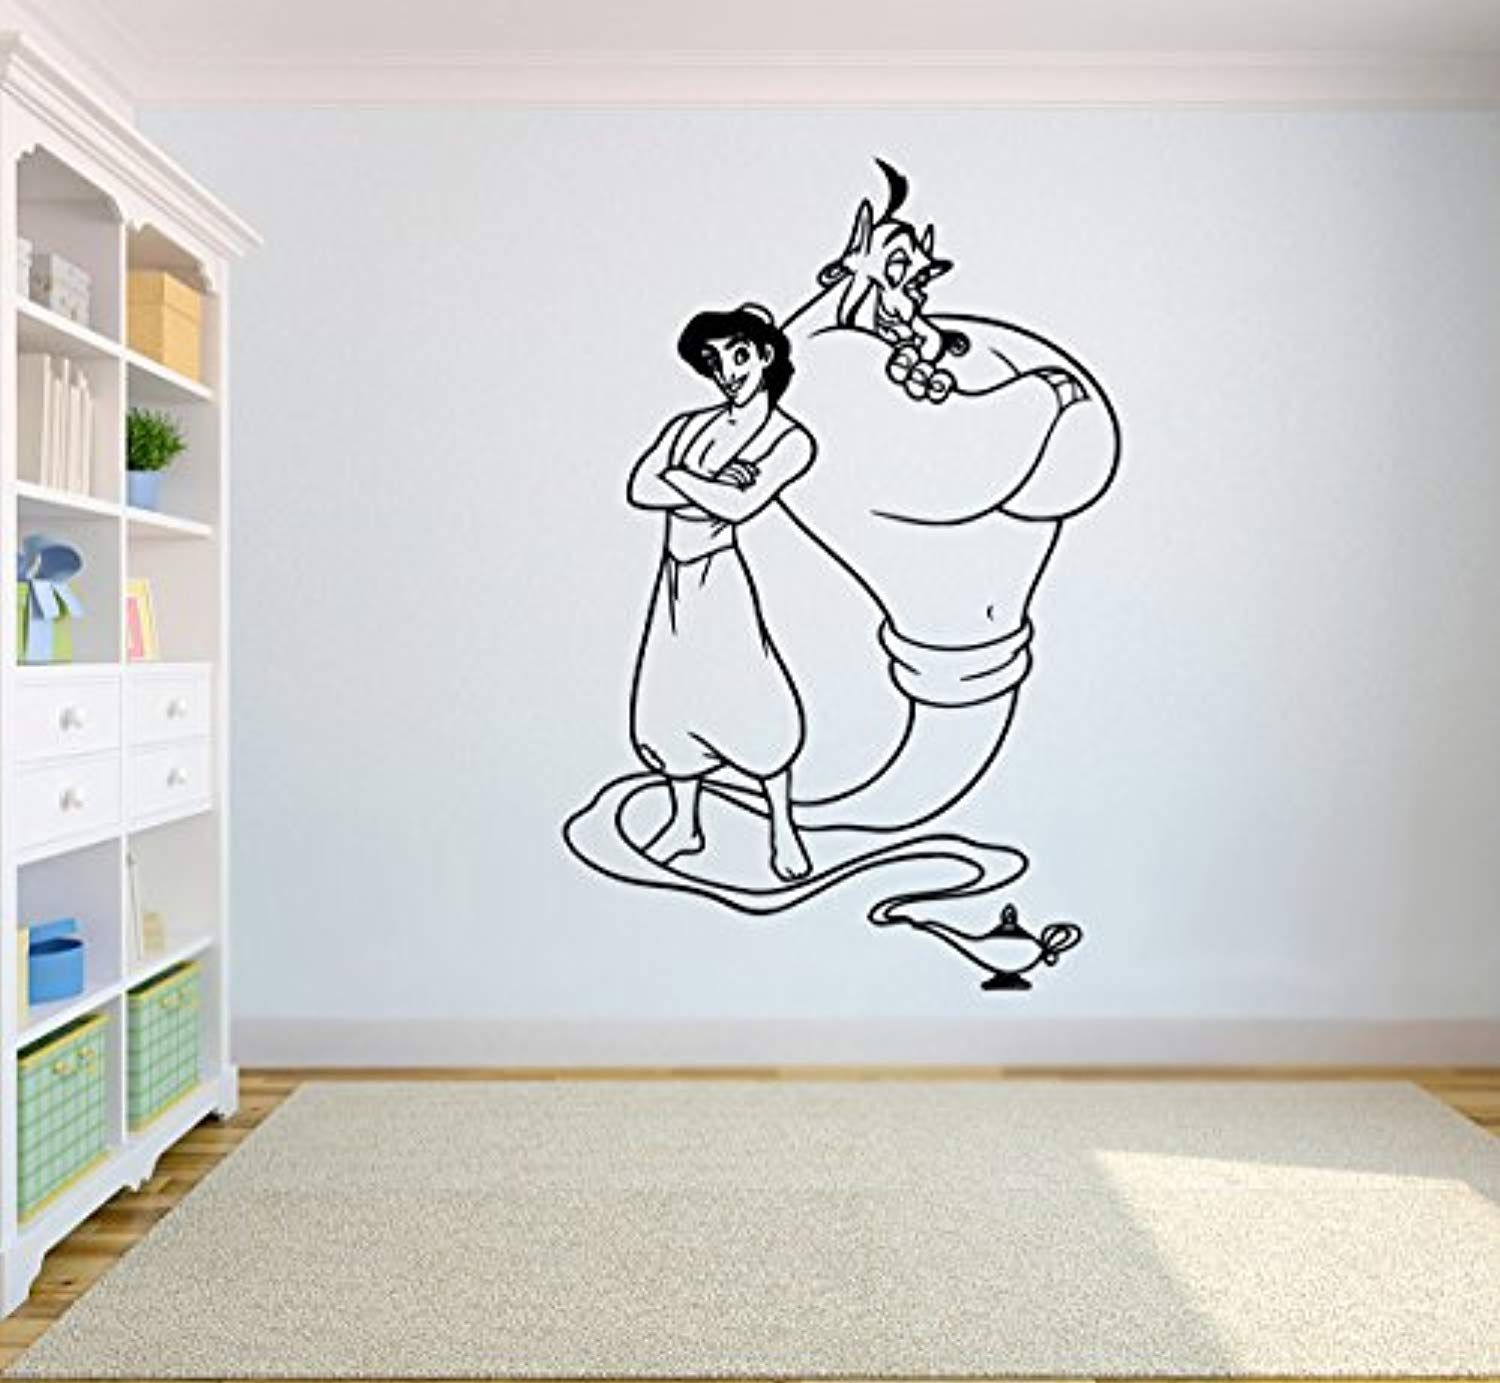 Aladdin Genie Wall Sticker Walt Disney Cartoon Vinyl Poster